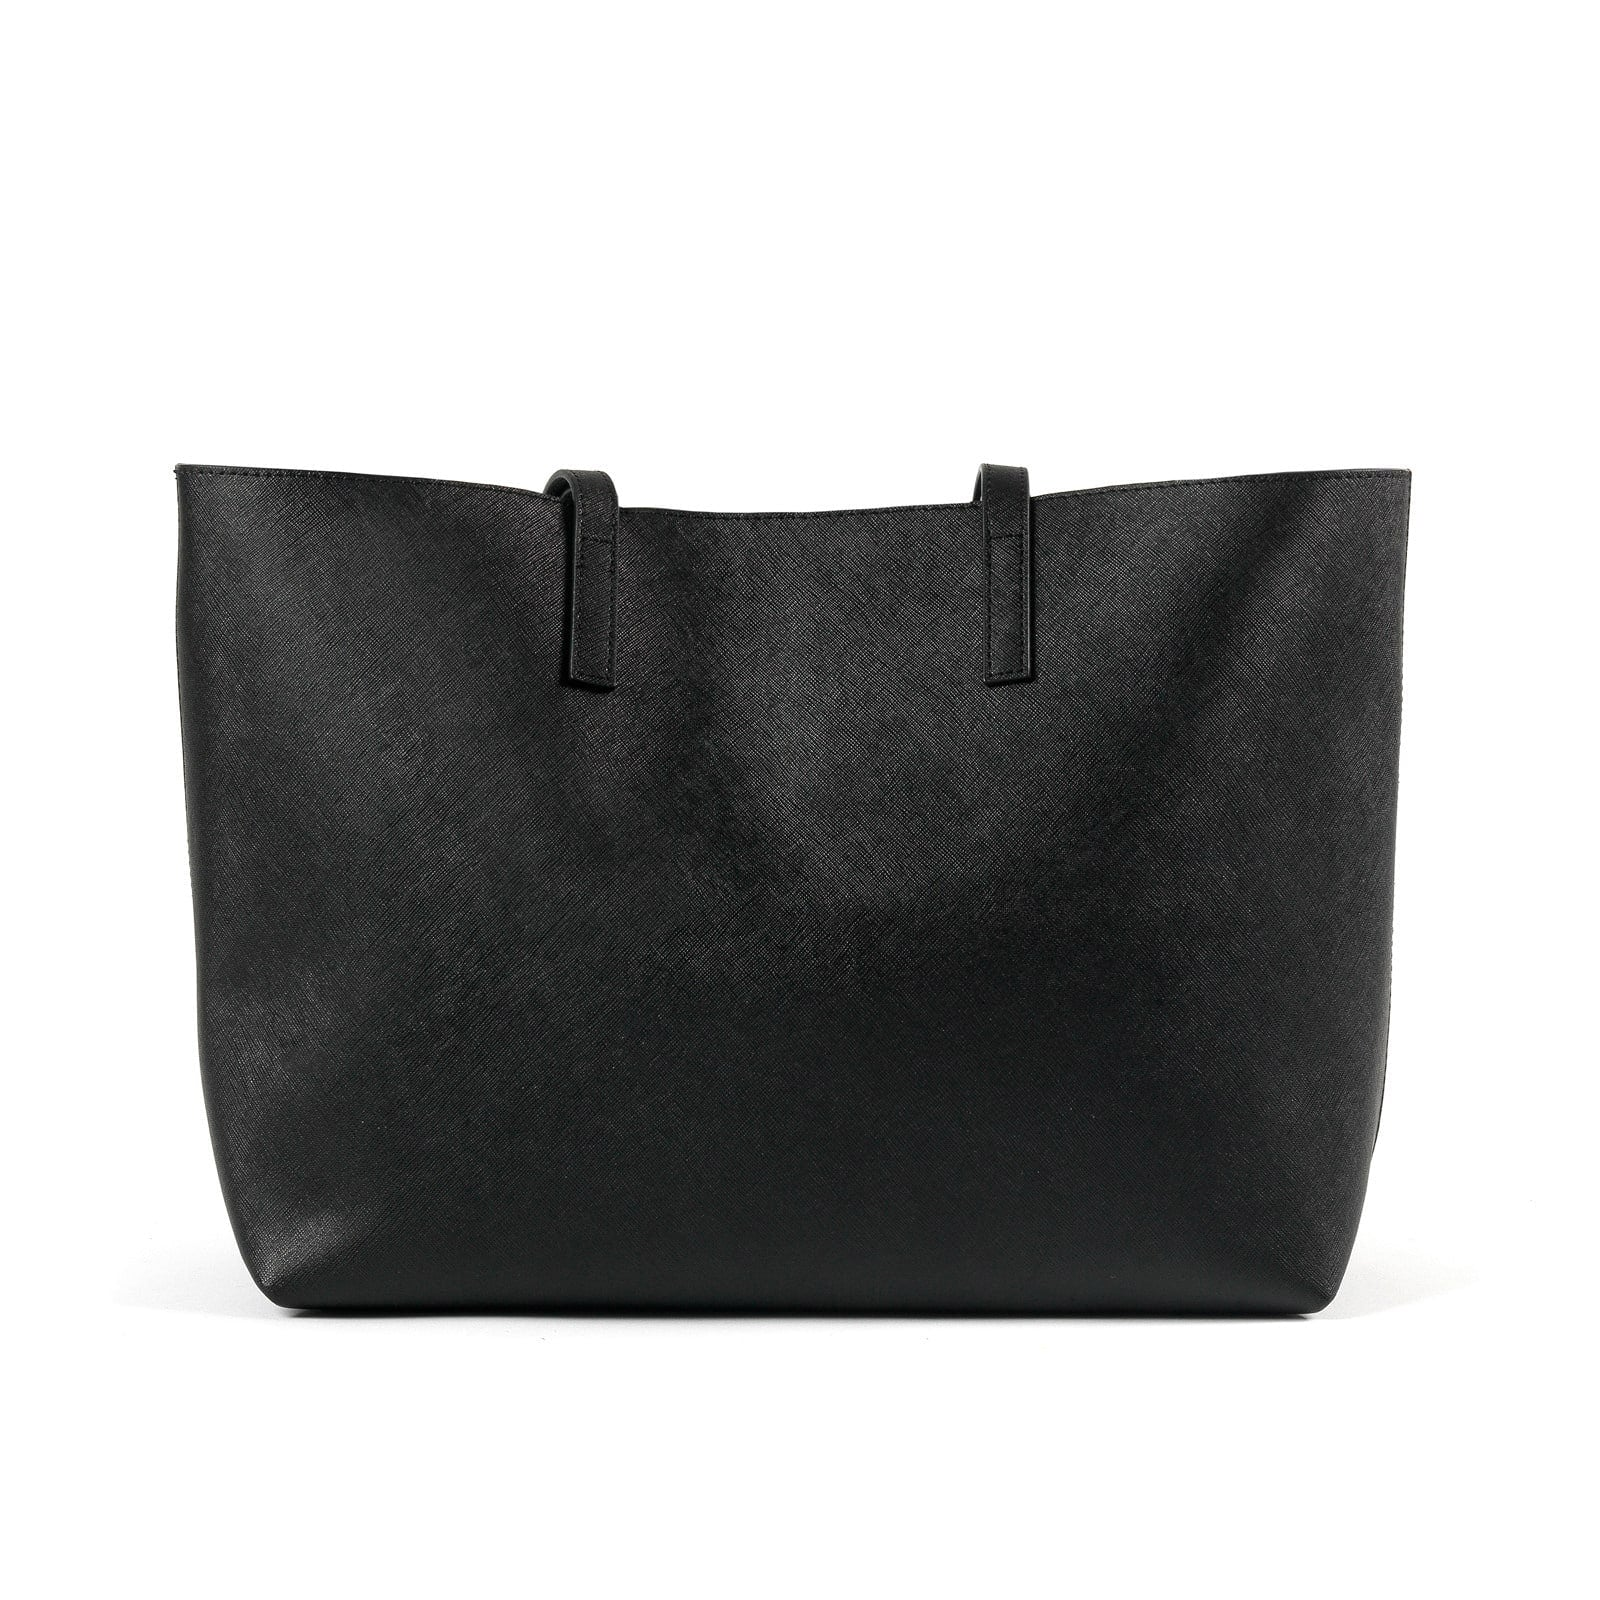 Blank Personalised Black Saffiano Leather Tote